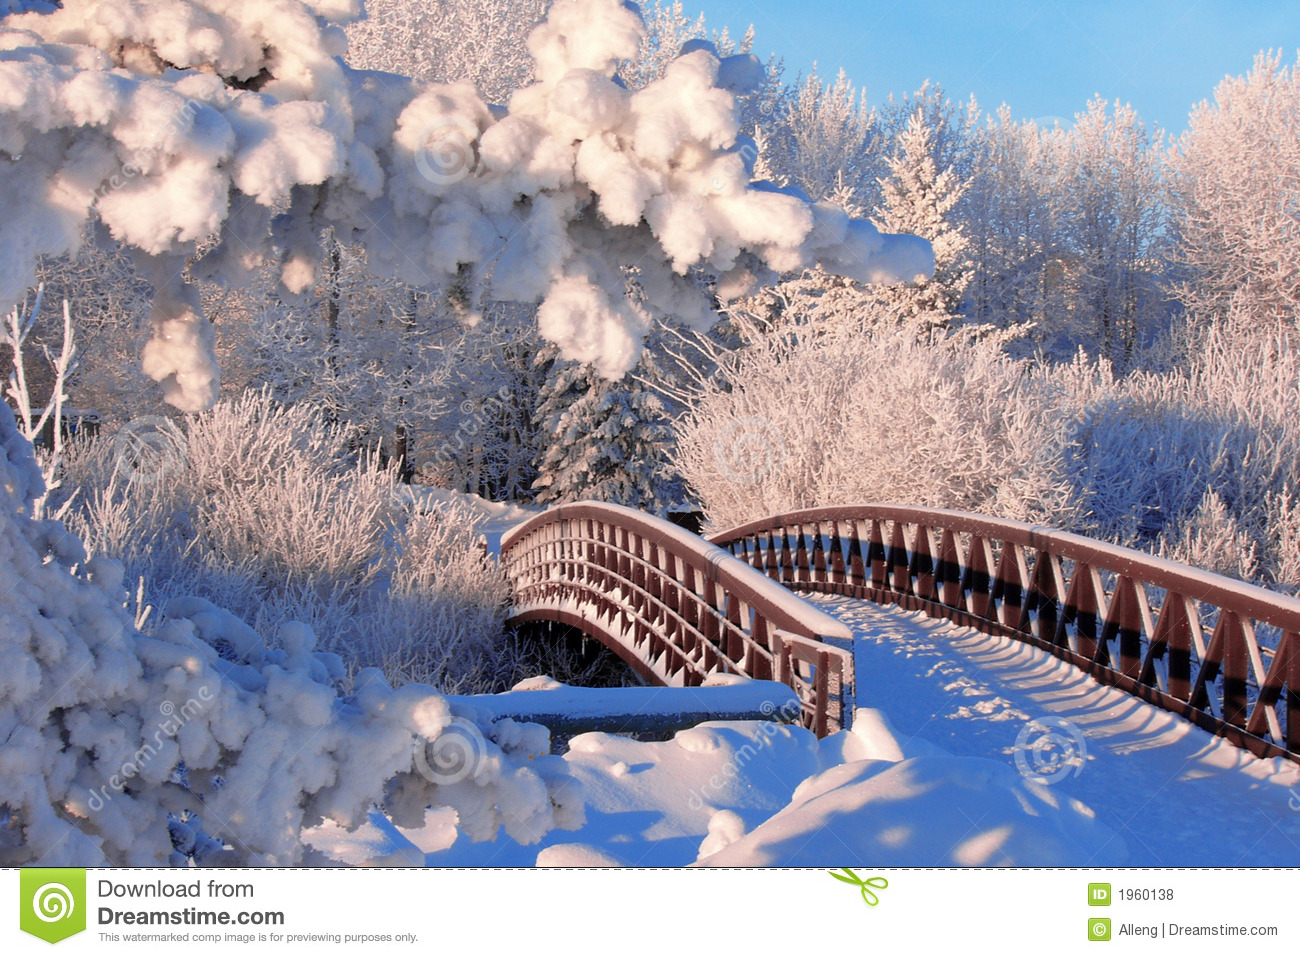 Free Download Of Christmas Wallpaper With Snow Falling Winter Bridge Stock Photo Image Of Holiday Cold Trees